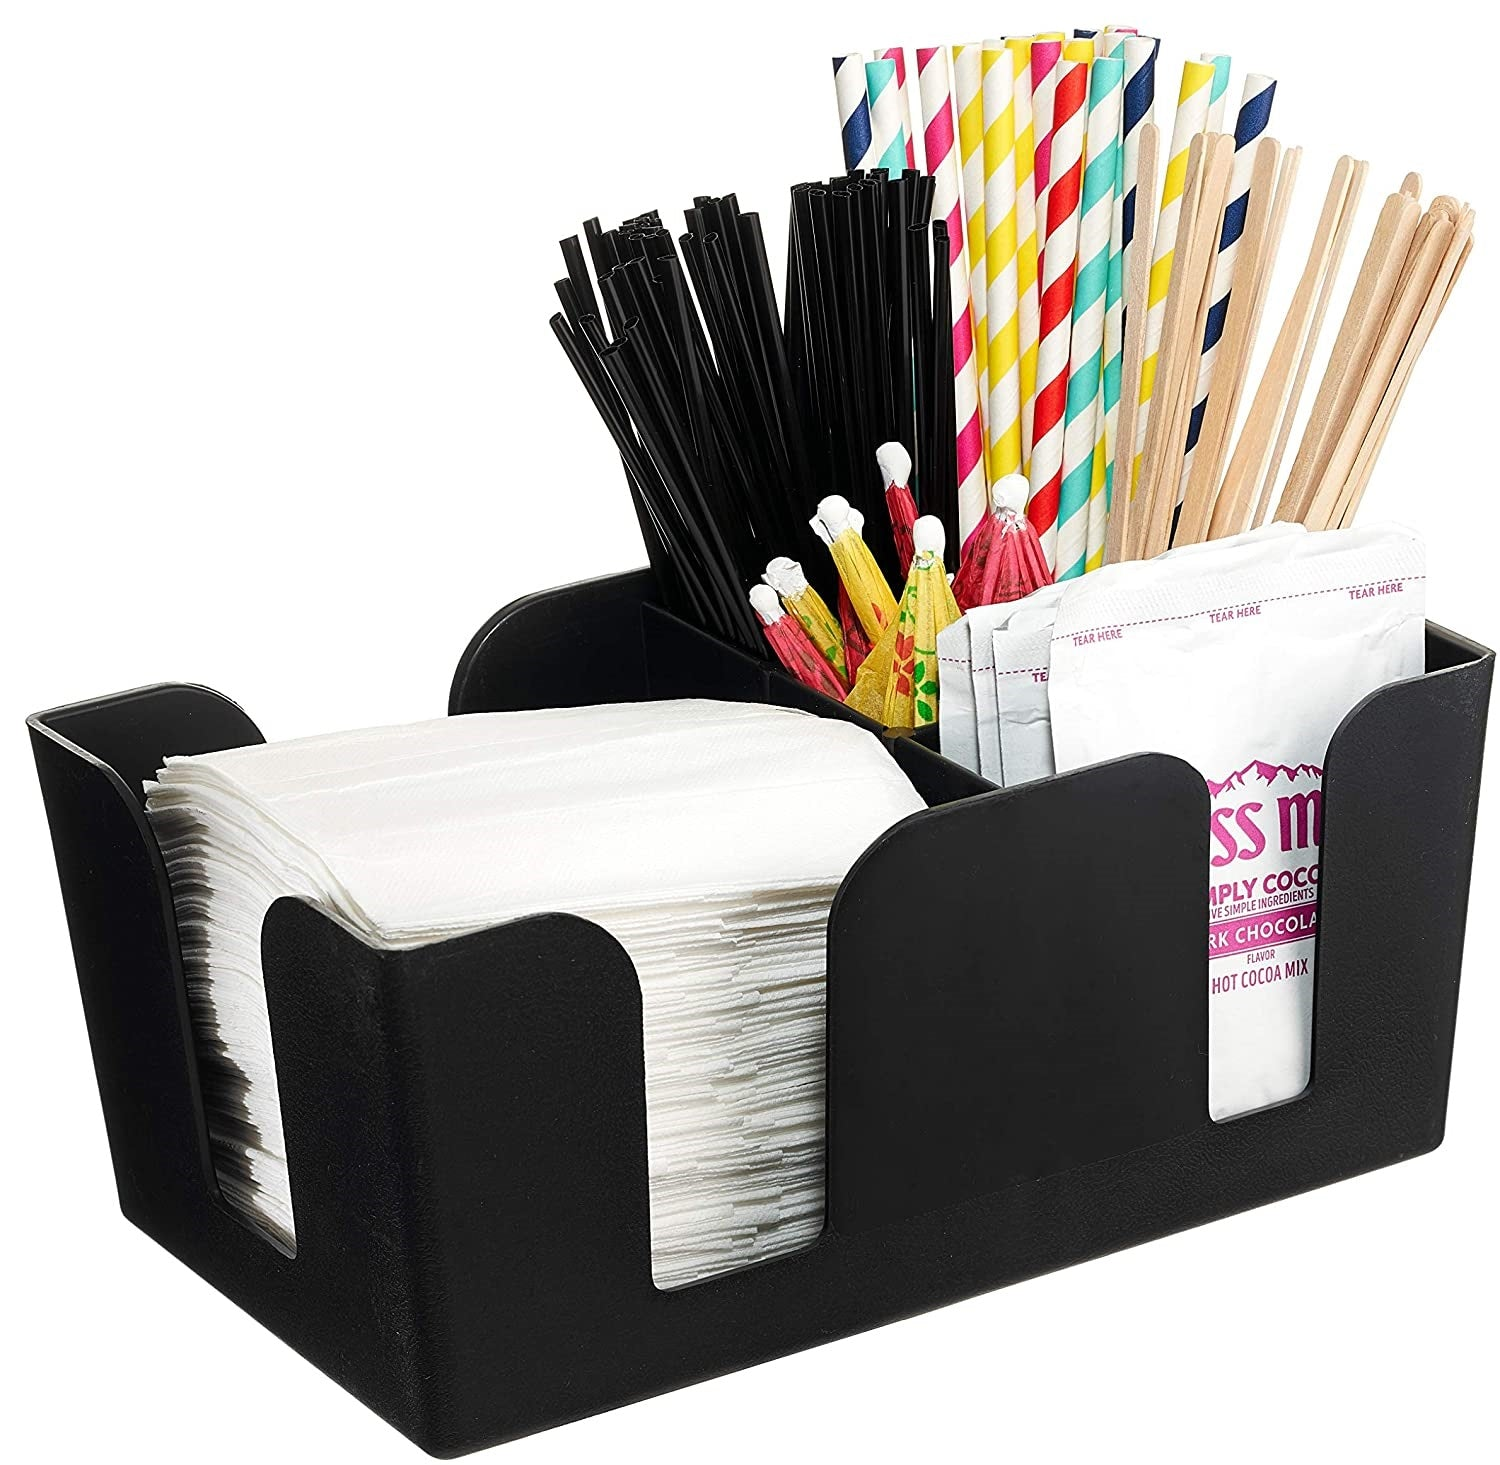 Bar Caddy with 6 Compartments, Plastic Bar Organizer, Heavy Duty Refillable Bar Organizer, Barware Caddy, Napkin Dispenser, Straw Organizer